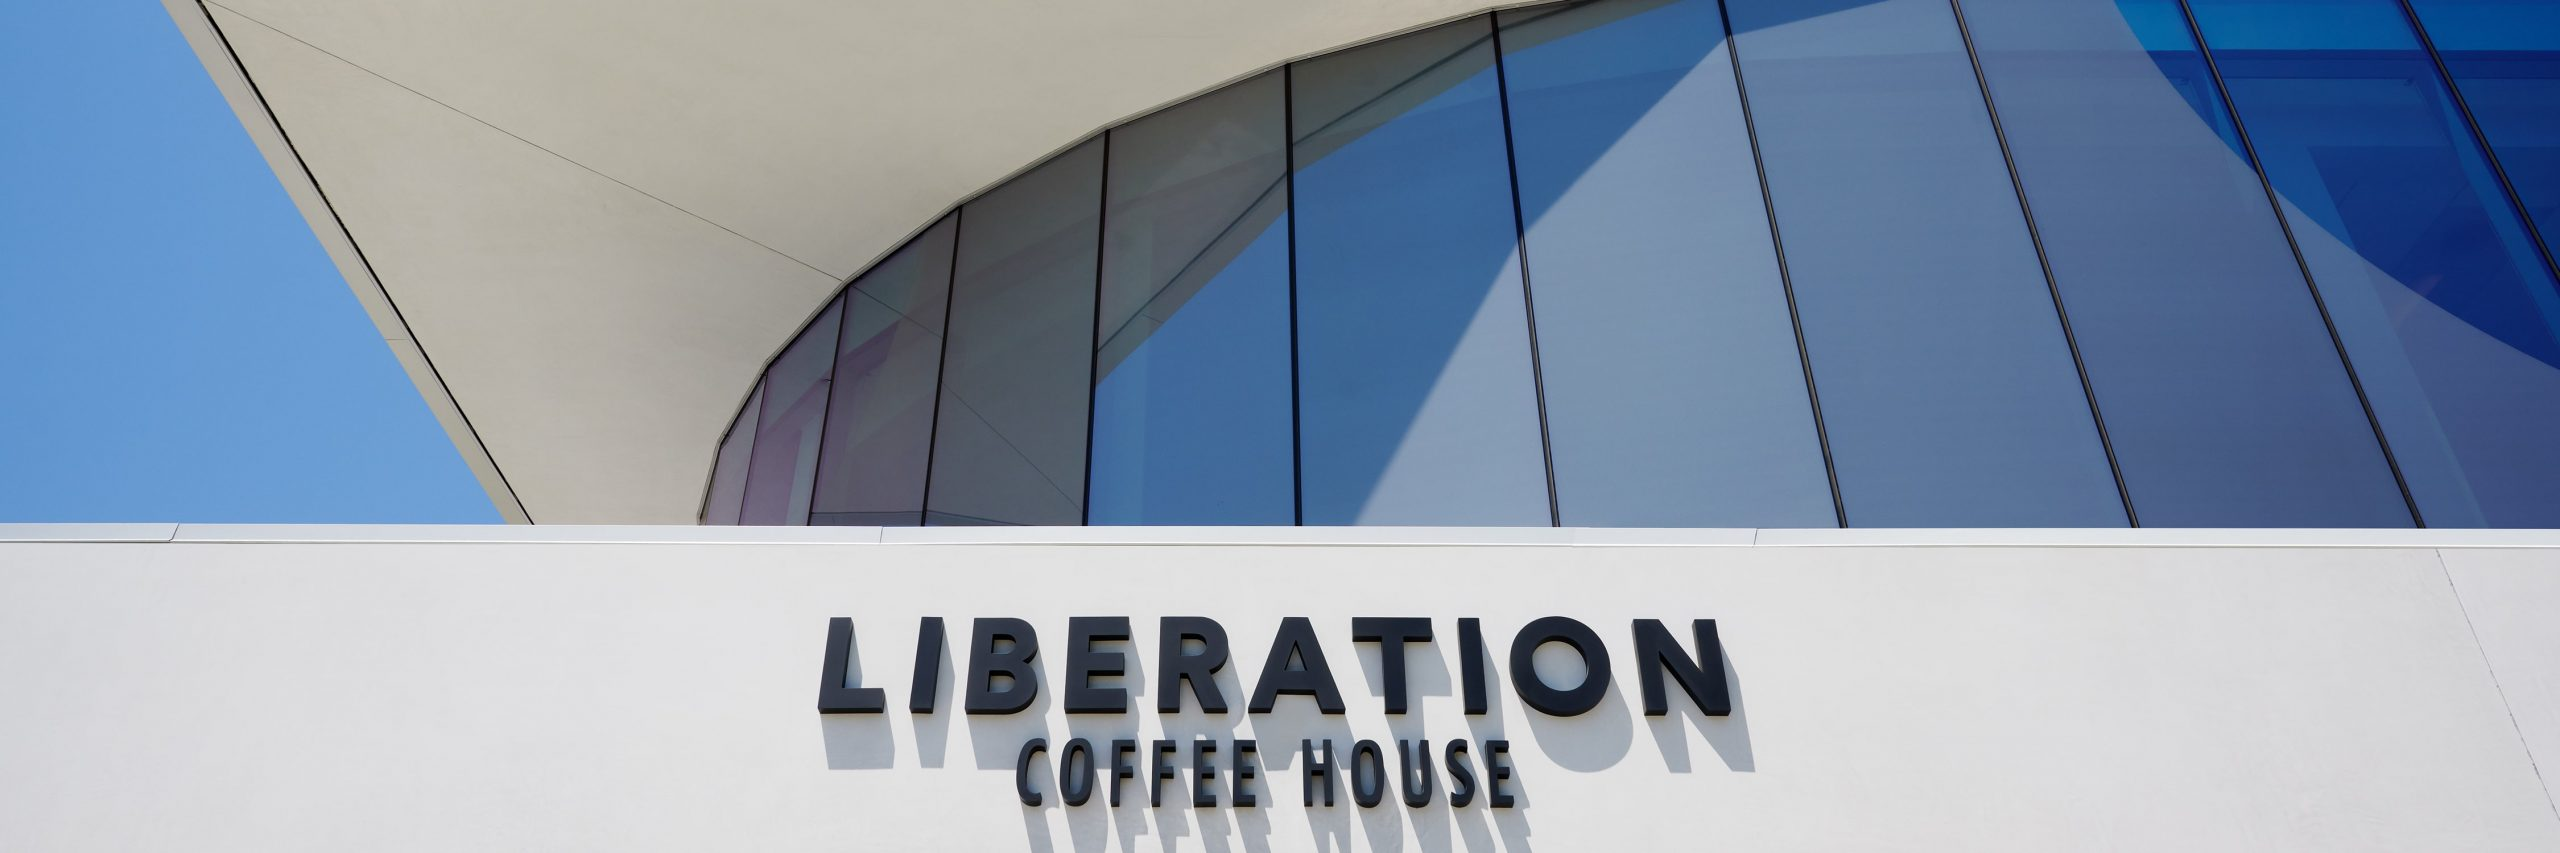 Liberation Coffee House Exterior